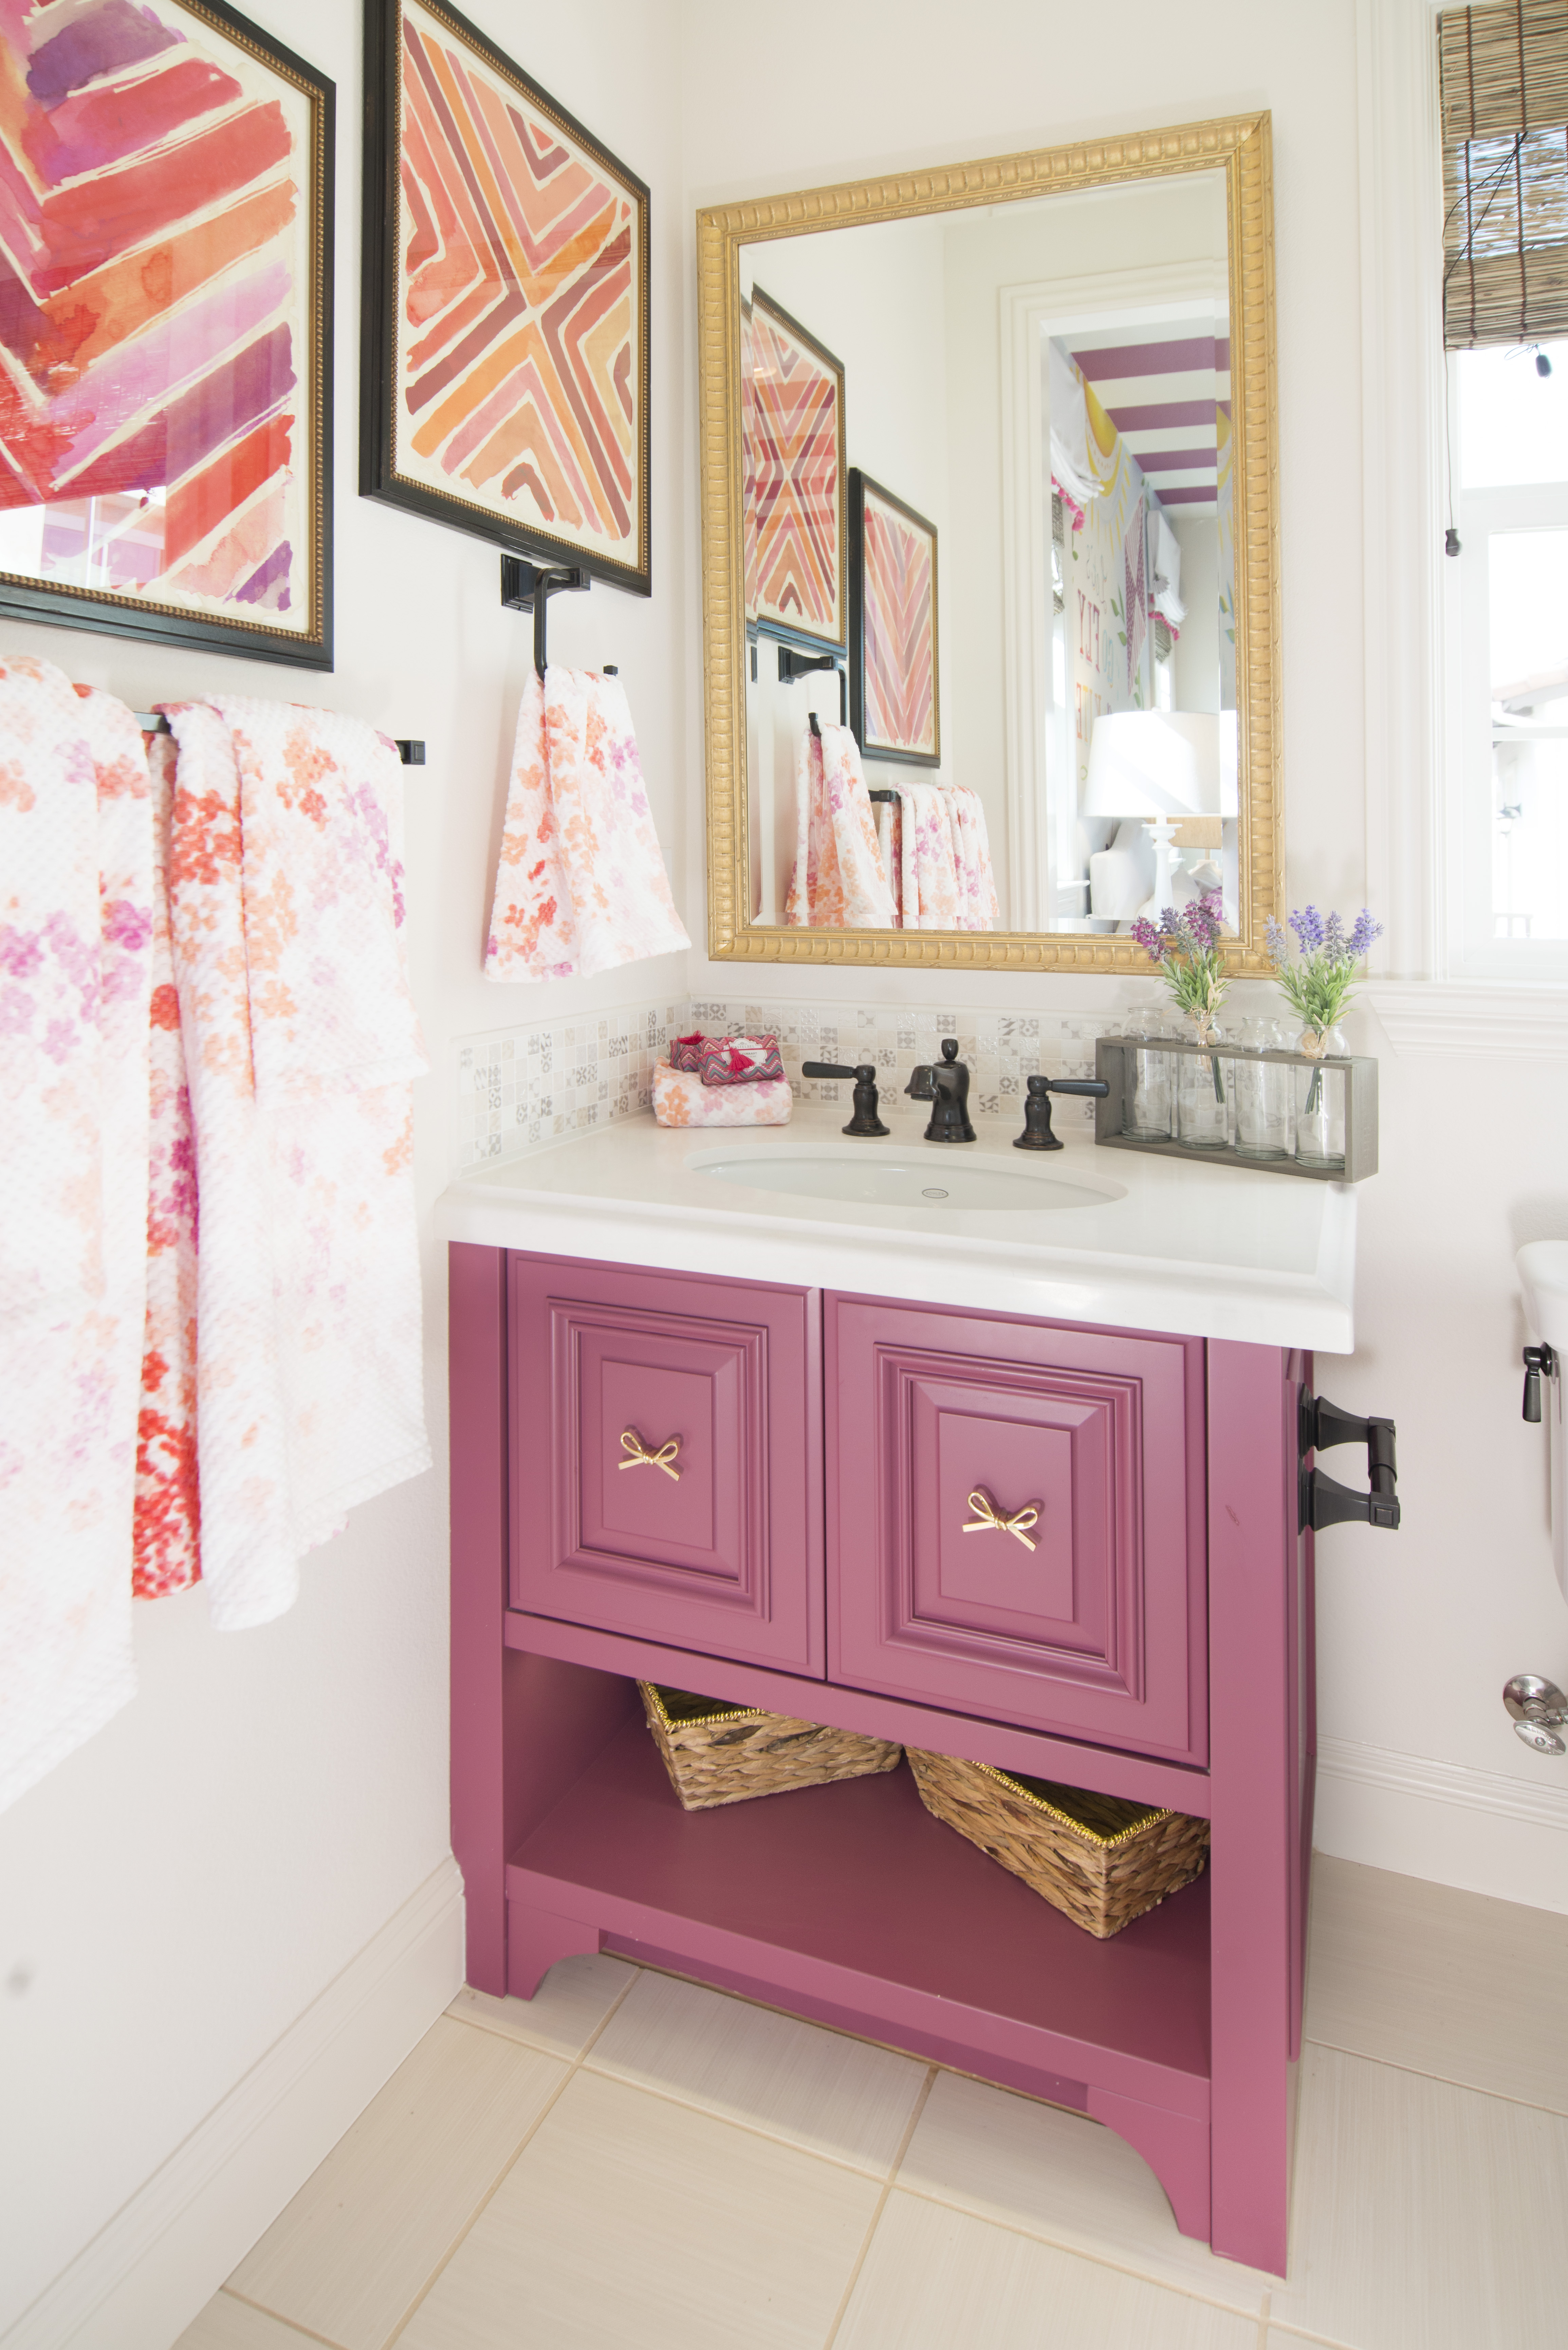 Beautiful Pink Bathroom Vanity With A White Counter Top And Gold Ribbon  Pulls